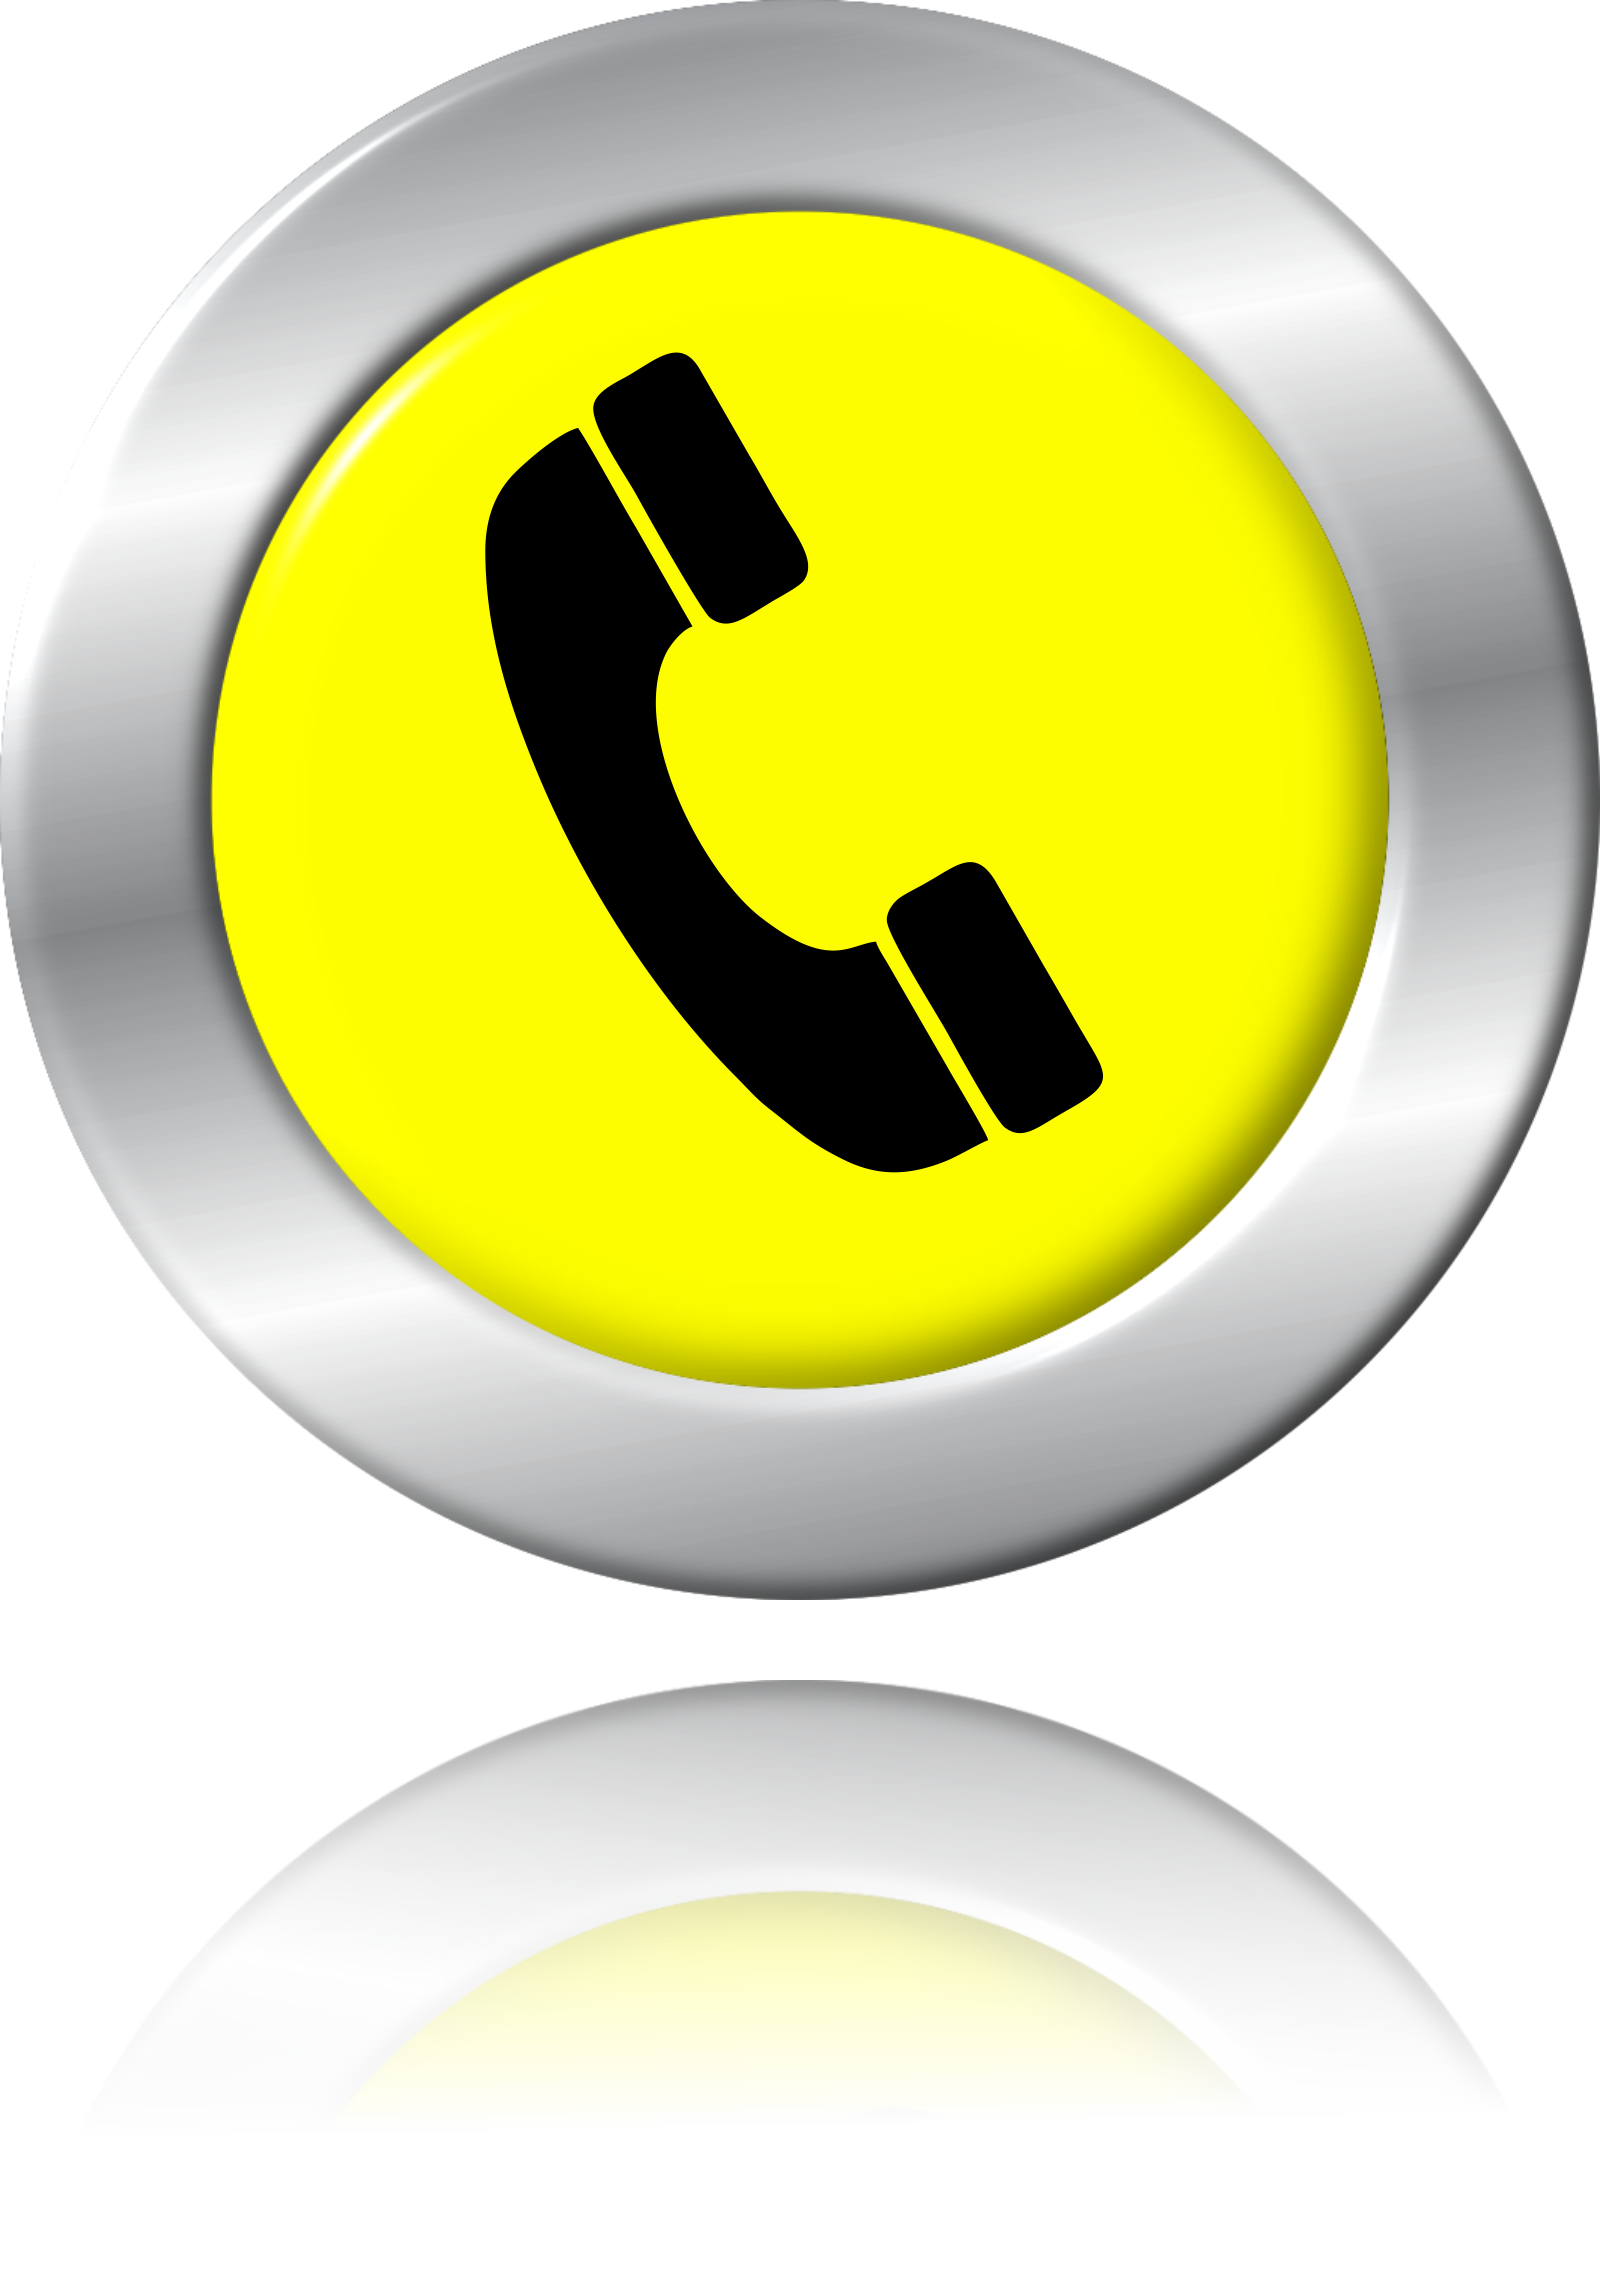 Advertising industry organization service. Telephone clipart yellow telephone